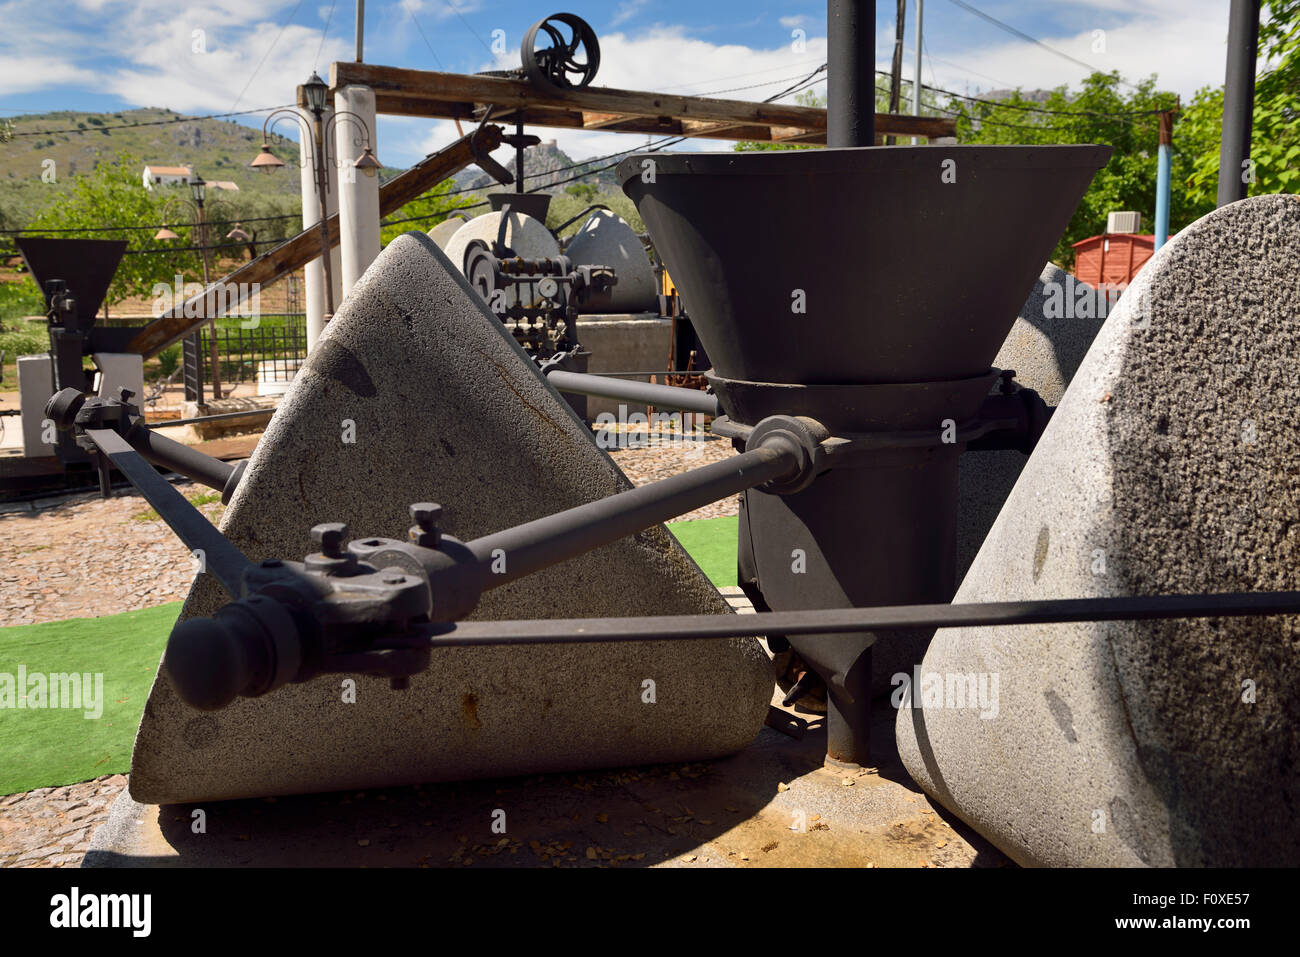 Large granite Millstones of Olive press machinery outside at Nicol's Hostel Restaurant near Luque Spain - Stock Image